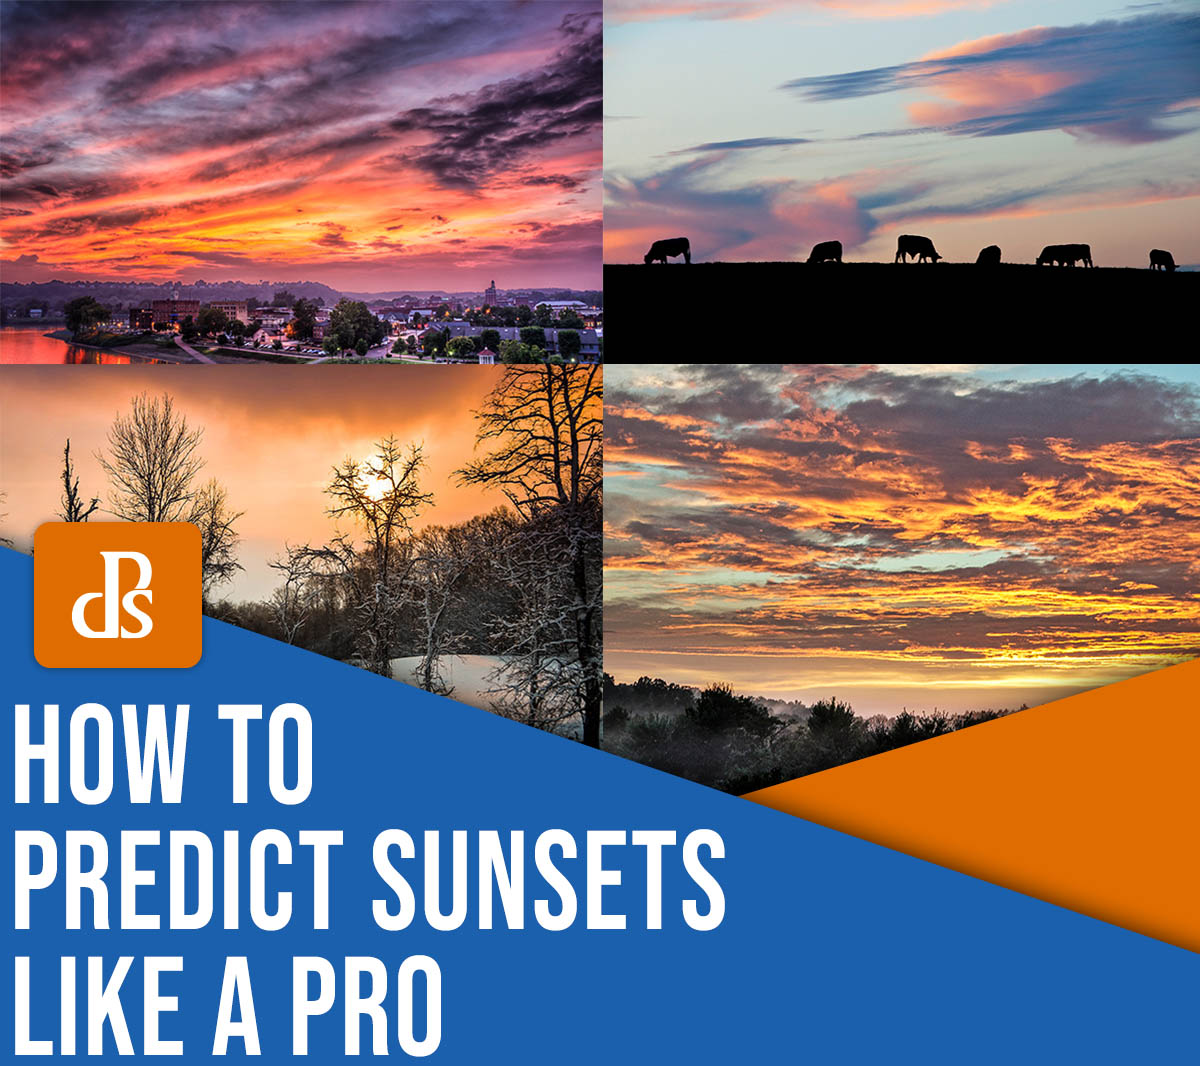 Sunset Predictor: How to Predict Dramatic Sunsets Like a Pro